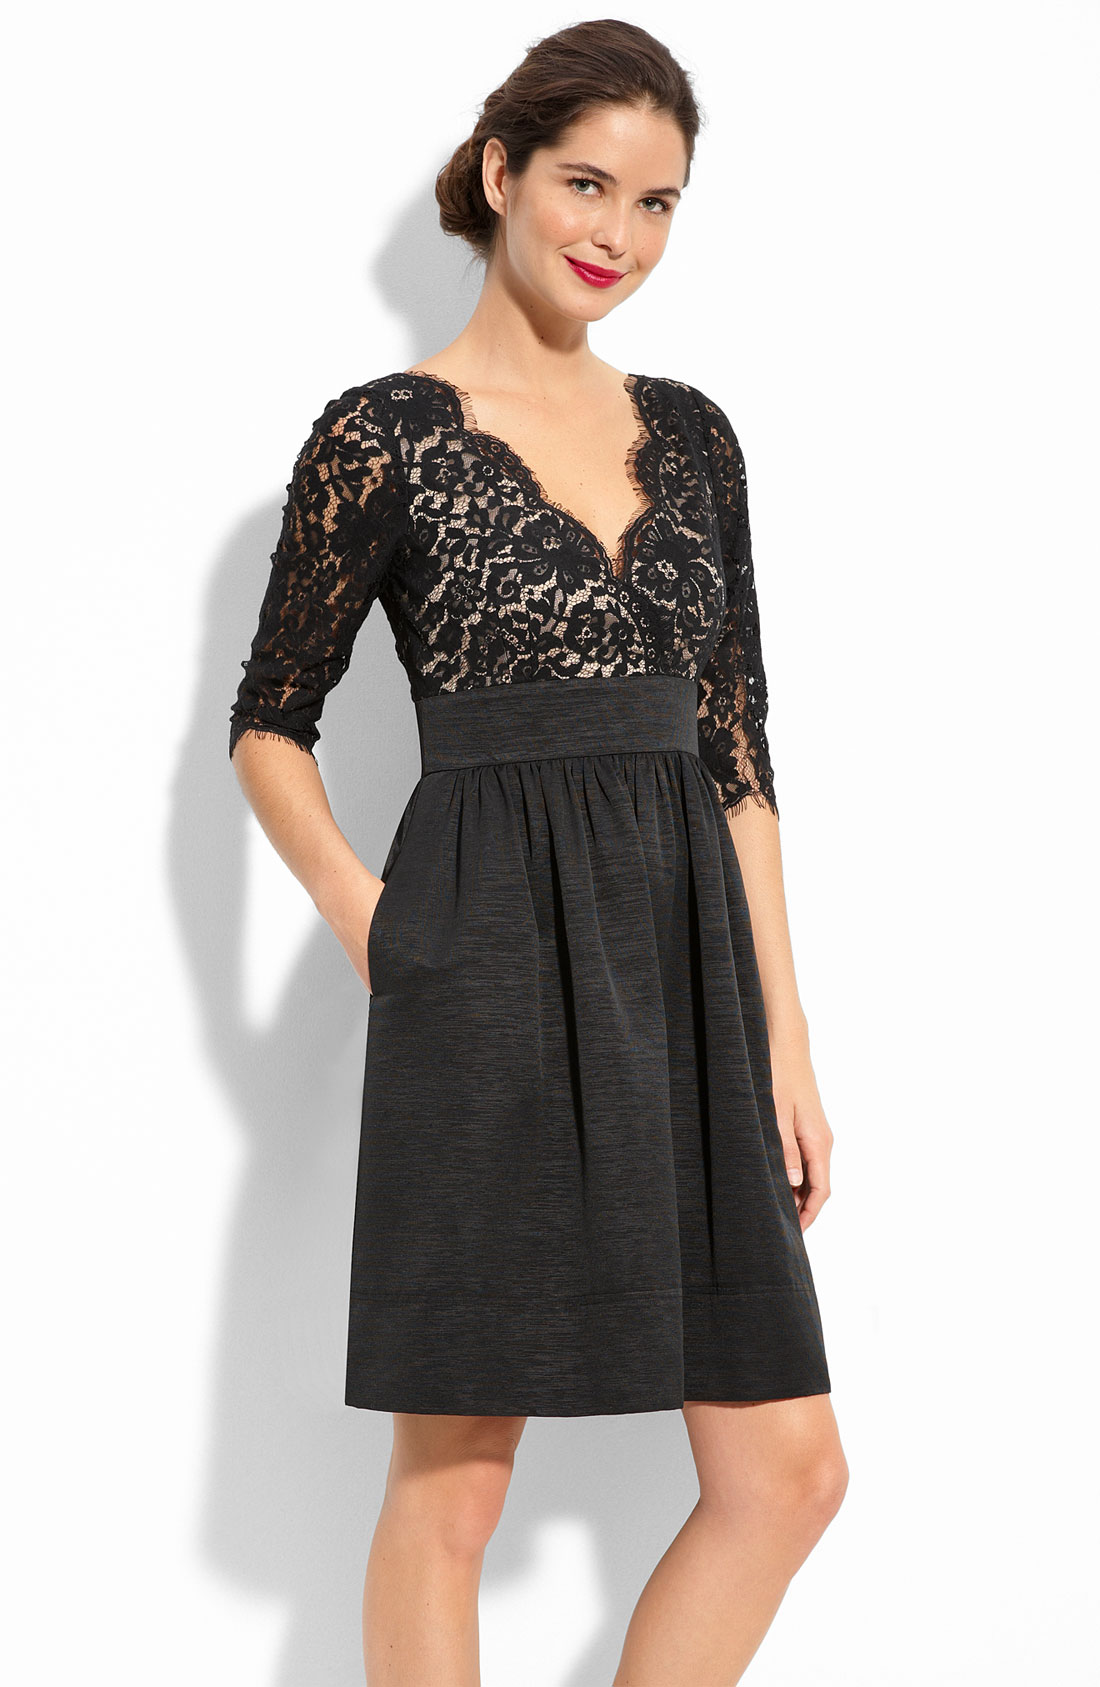 Buy the latest lace dresses for women cheap prices, and check out our daily updated new arrival White Lace Dress and Black Lace Dress free shipping at lemkecollier.ga